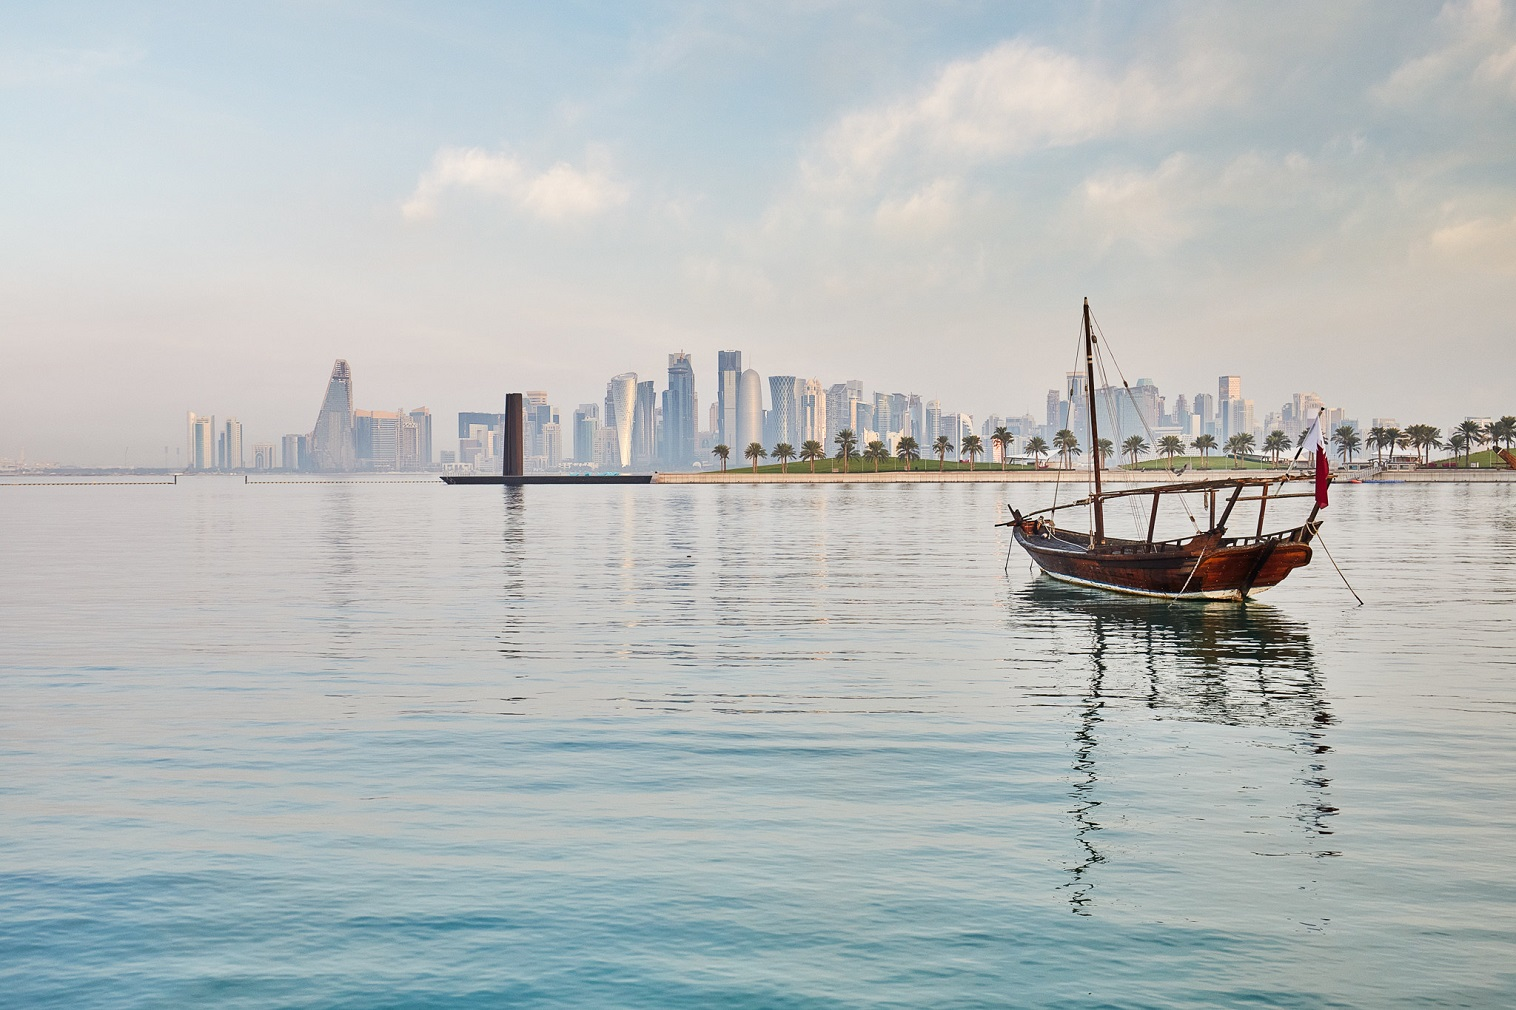 The new measures will allow people who are fully vaccinated to visit Qatar without the need for quarantine.